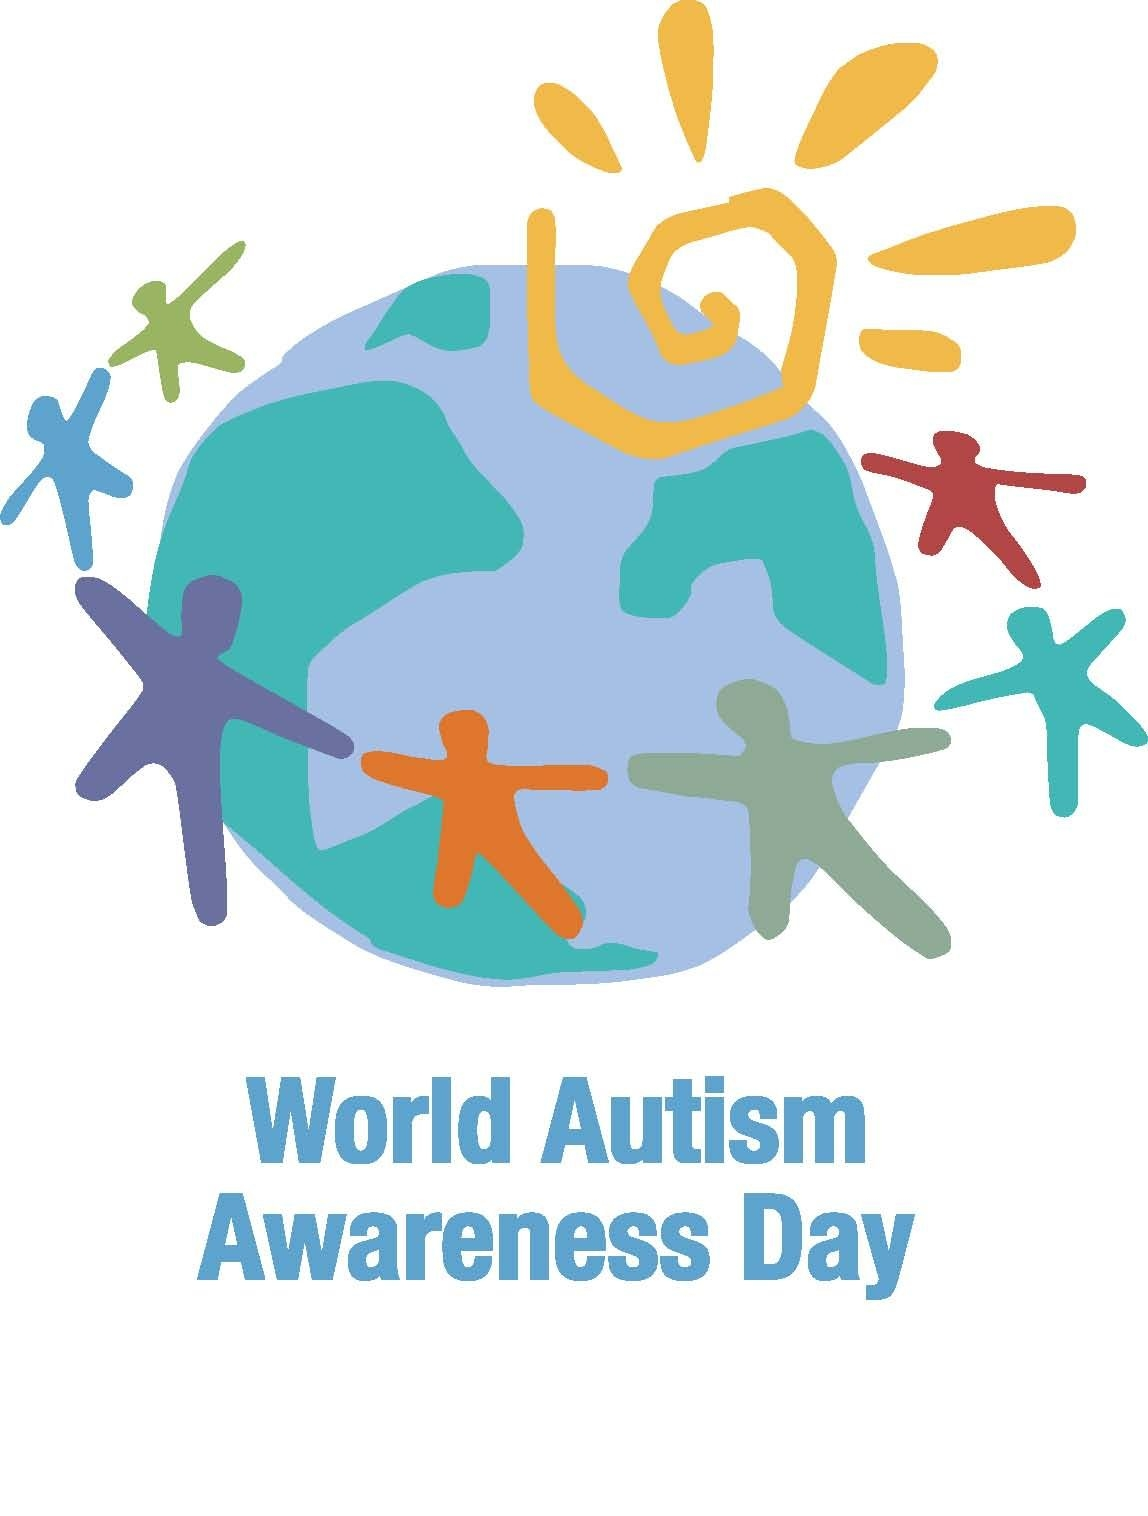 World Autism Awareness Day Tuesday